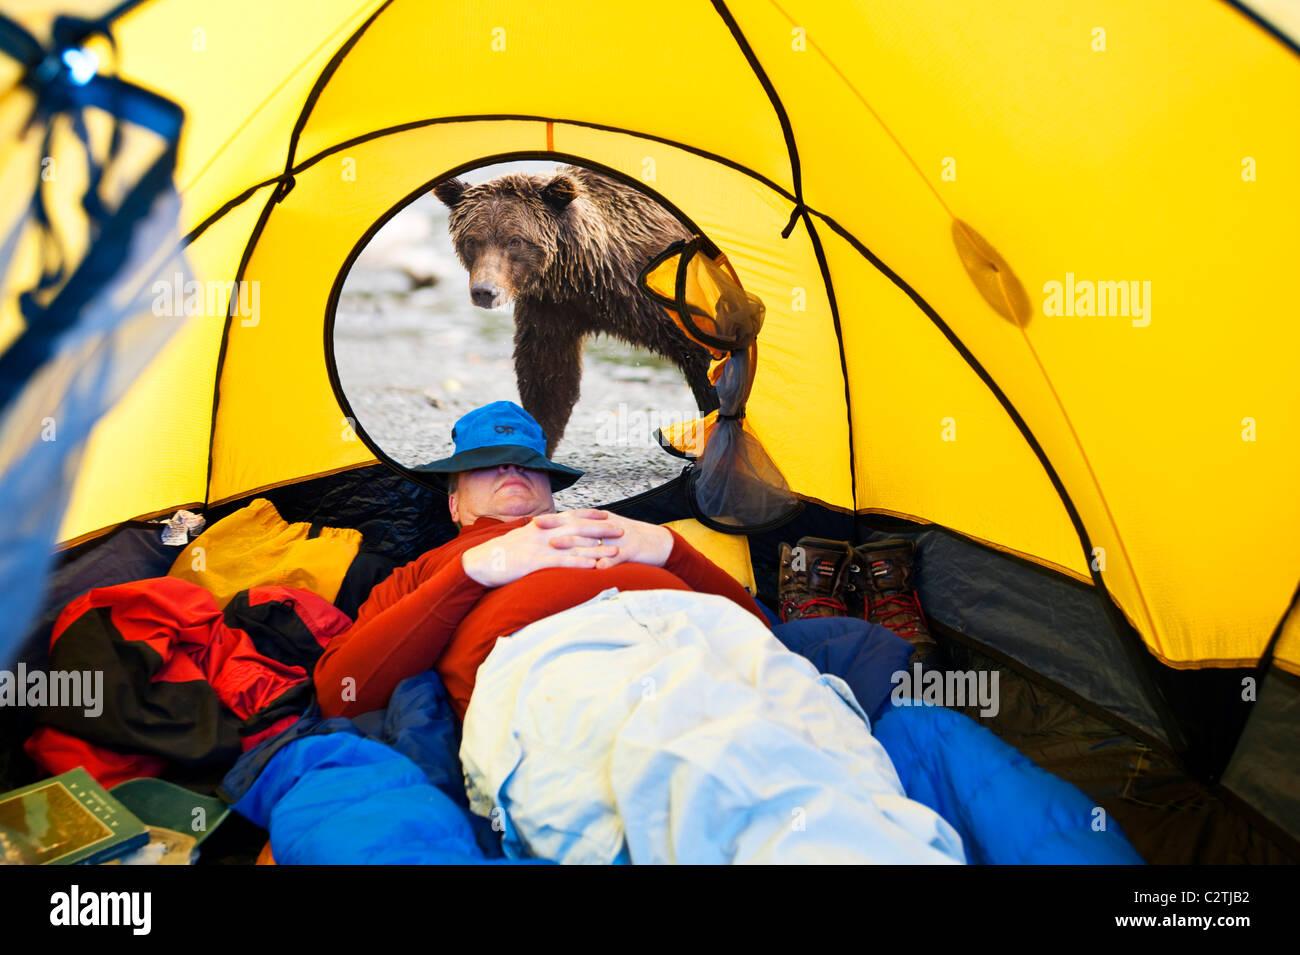 COMPOSITE Grizzly bear looking through tent door with man inside, Alaska COMPOSITE - Stock Image